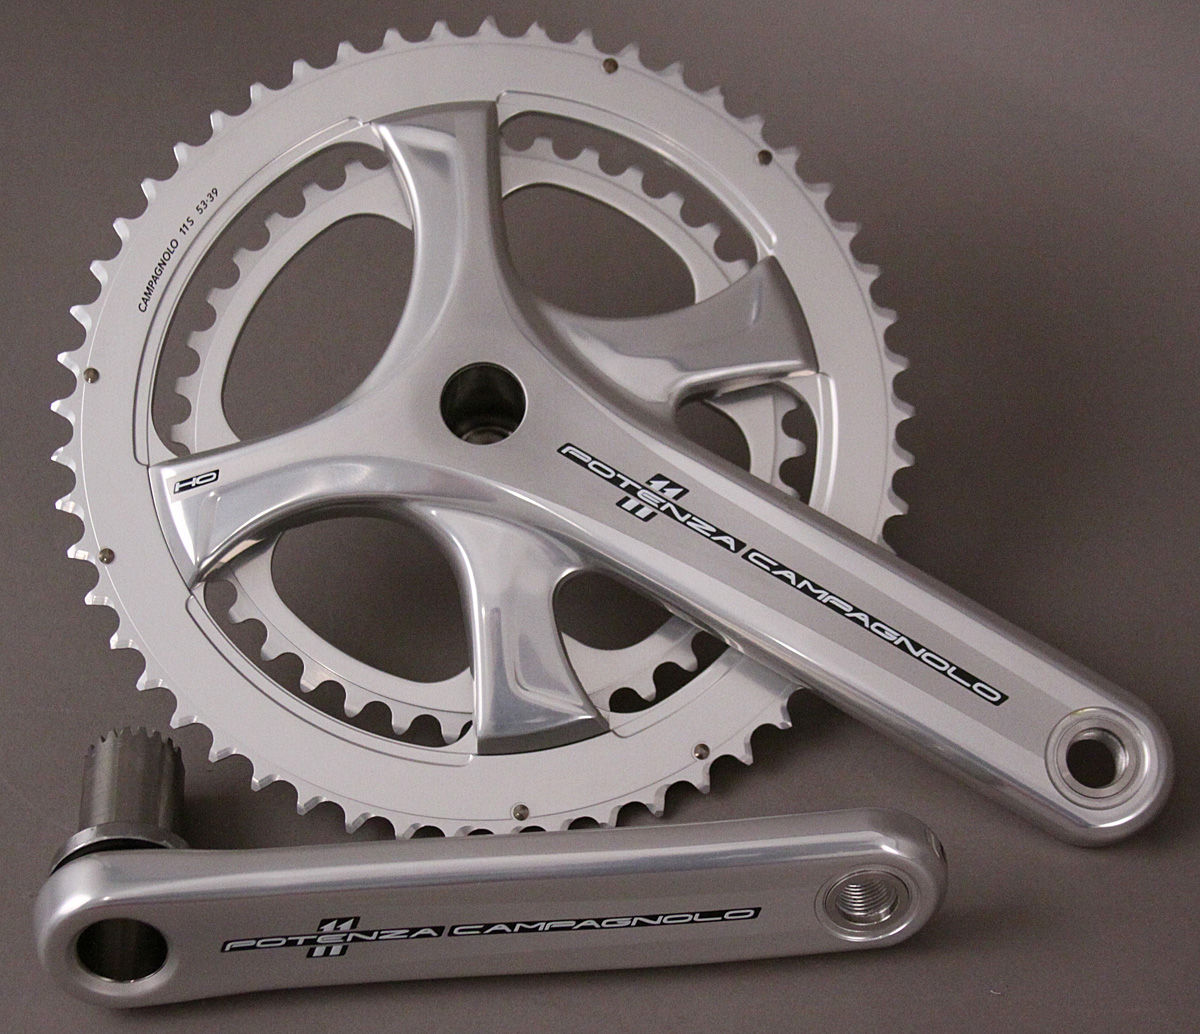 Campagnolo Potenza 11 Speed Road Bike UT Crankset 175 39/53